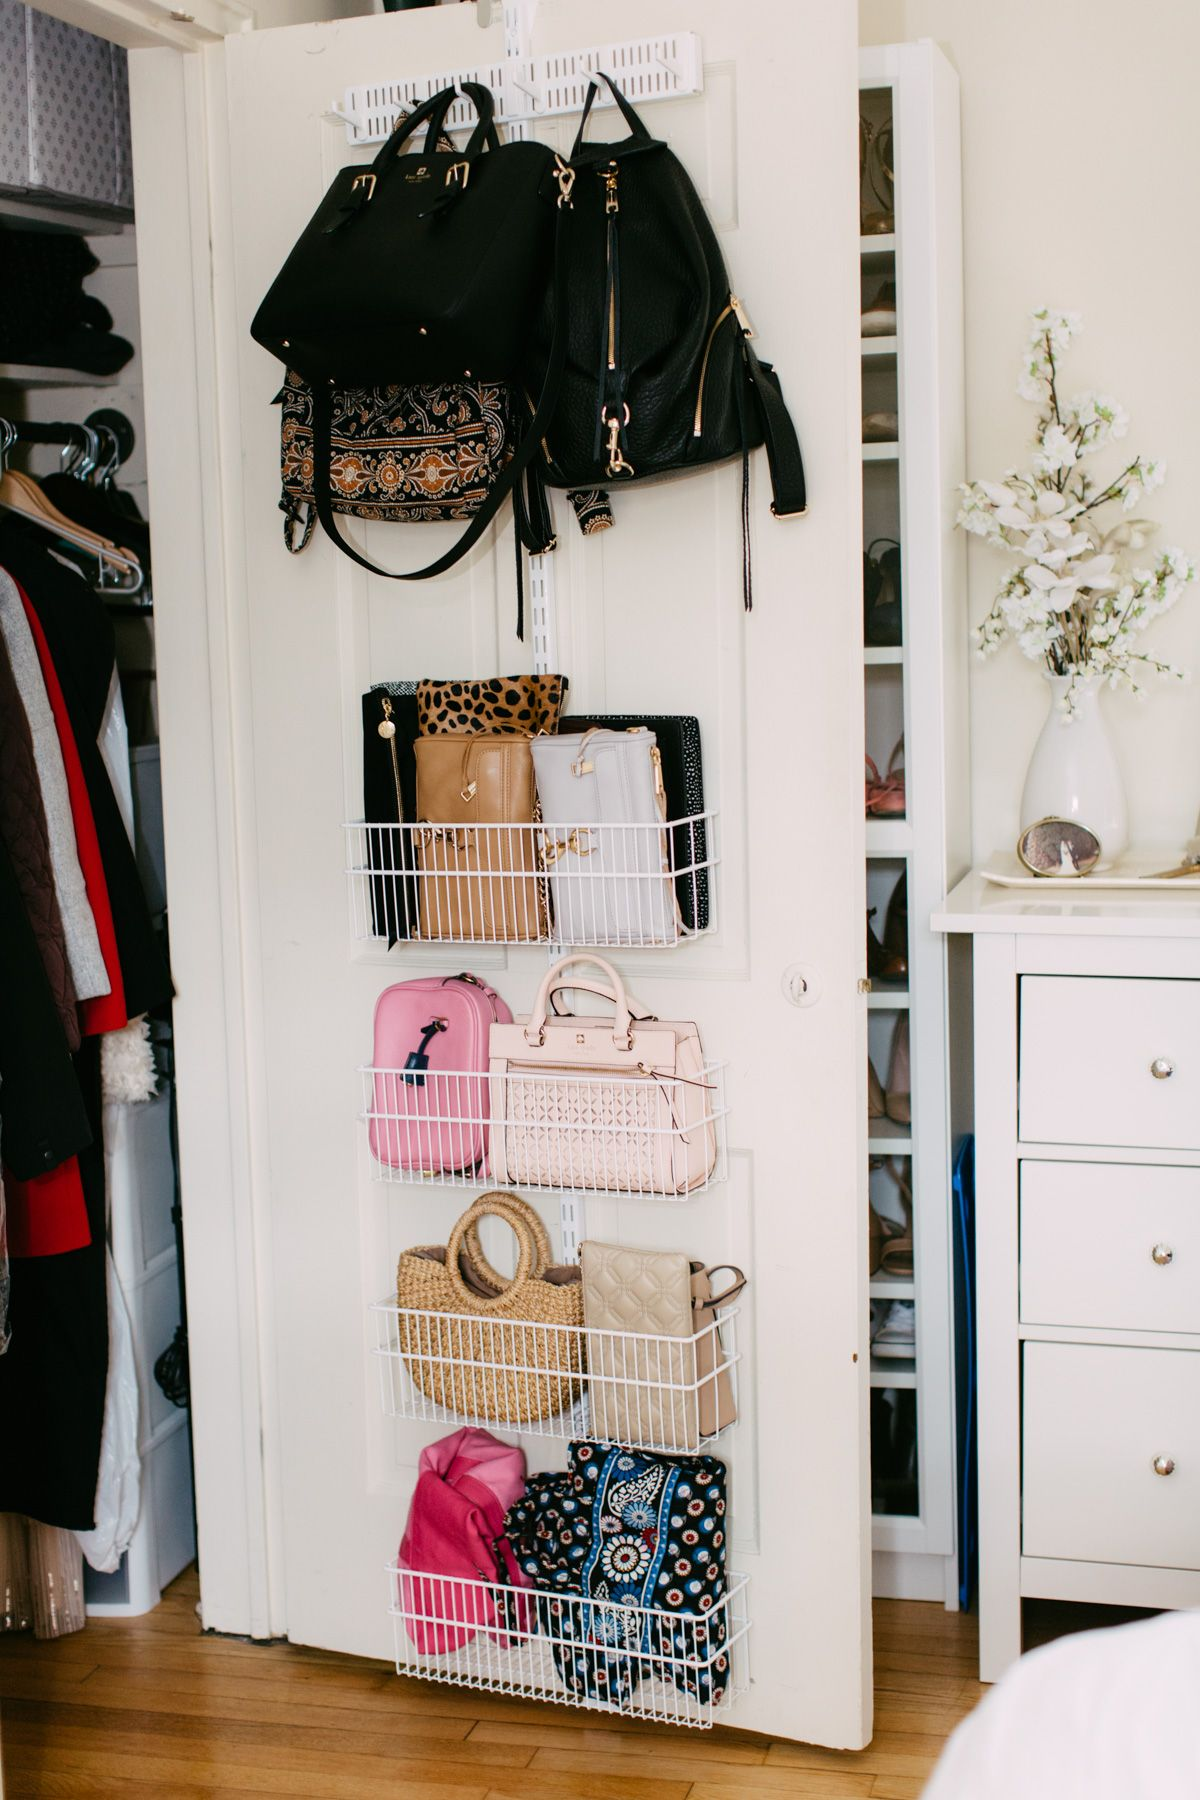 5 Small Bedroom Storage Ideas - DIY Storage Ideas for Small Rooms